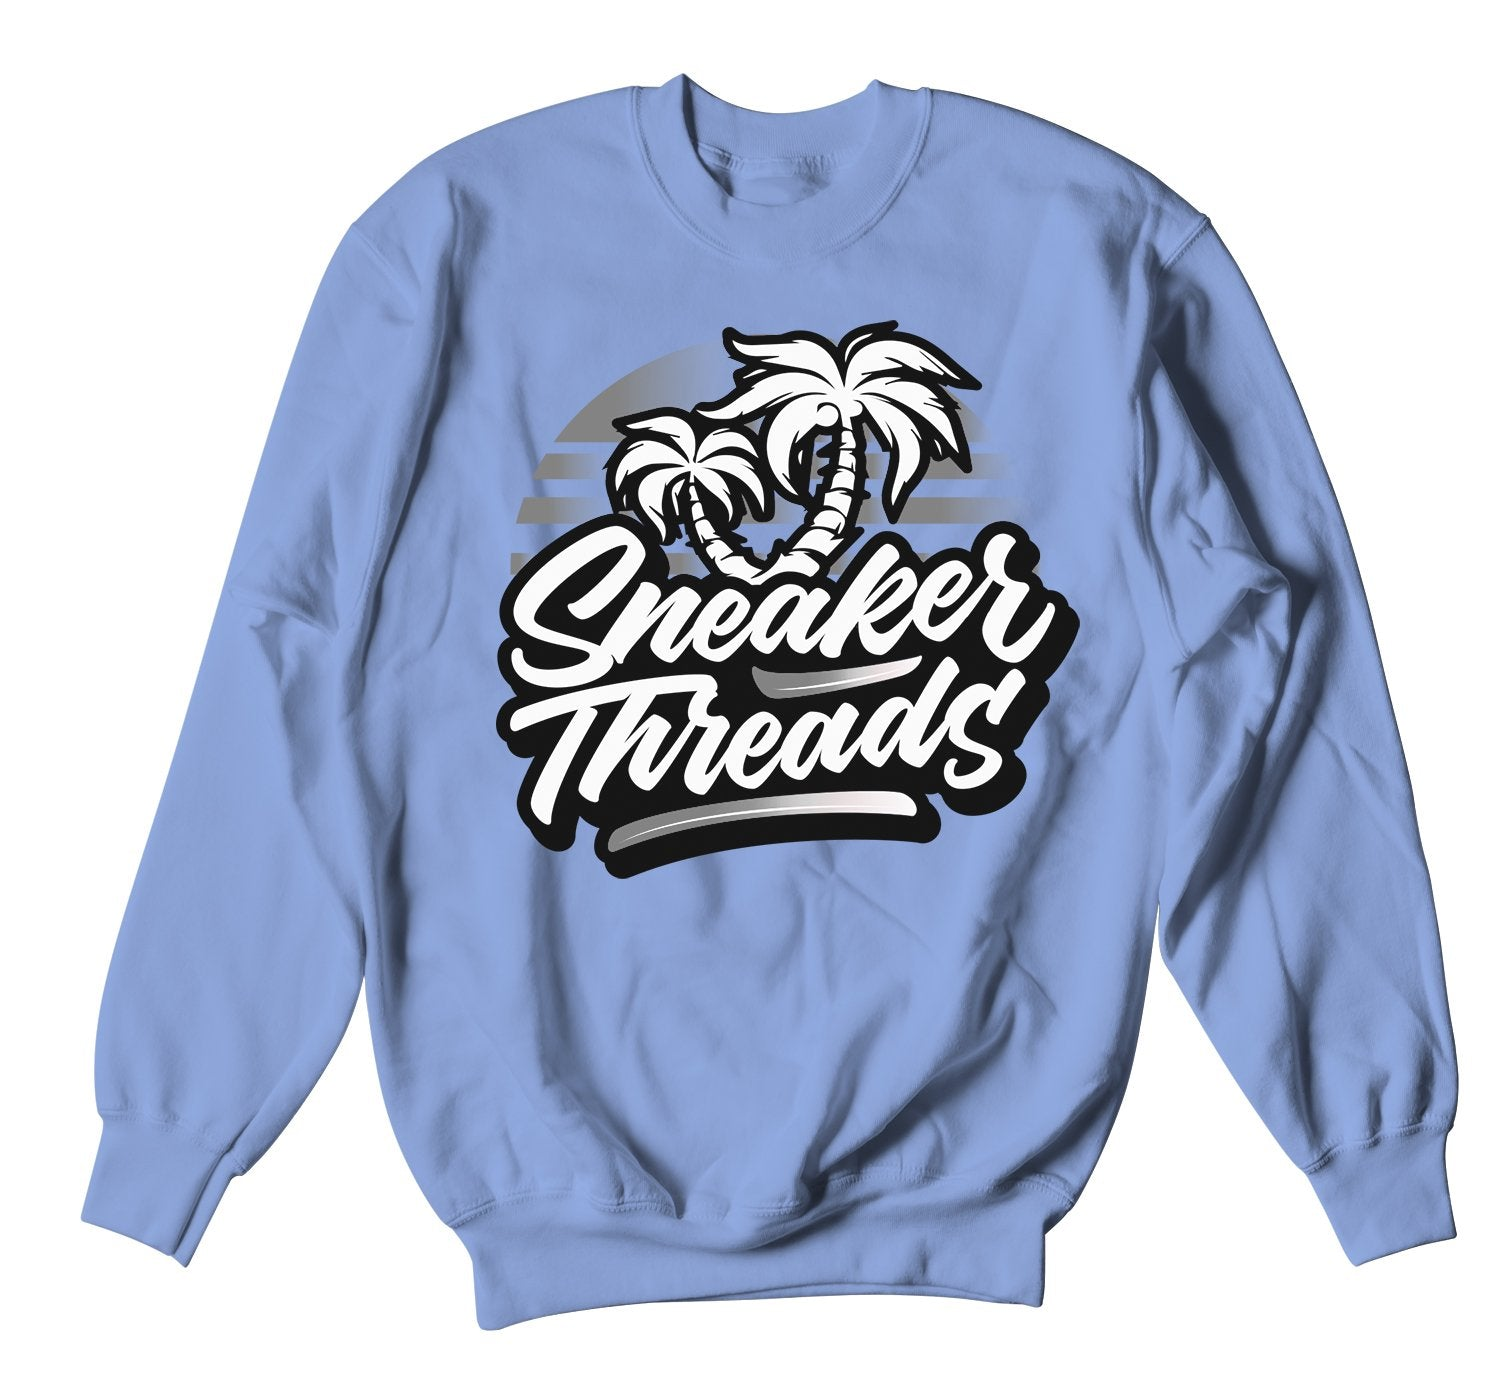 UNC Jordan 3 crewneck sweater collection designed to match